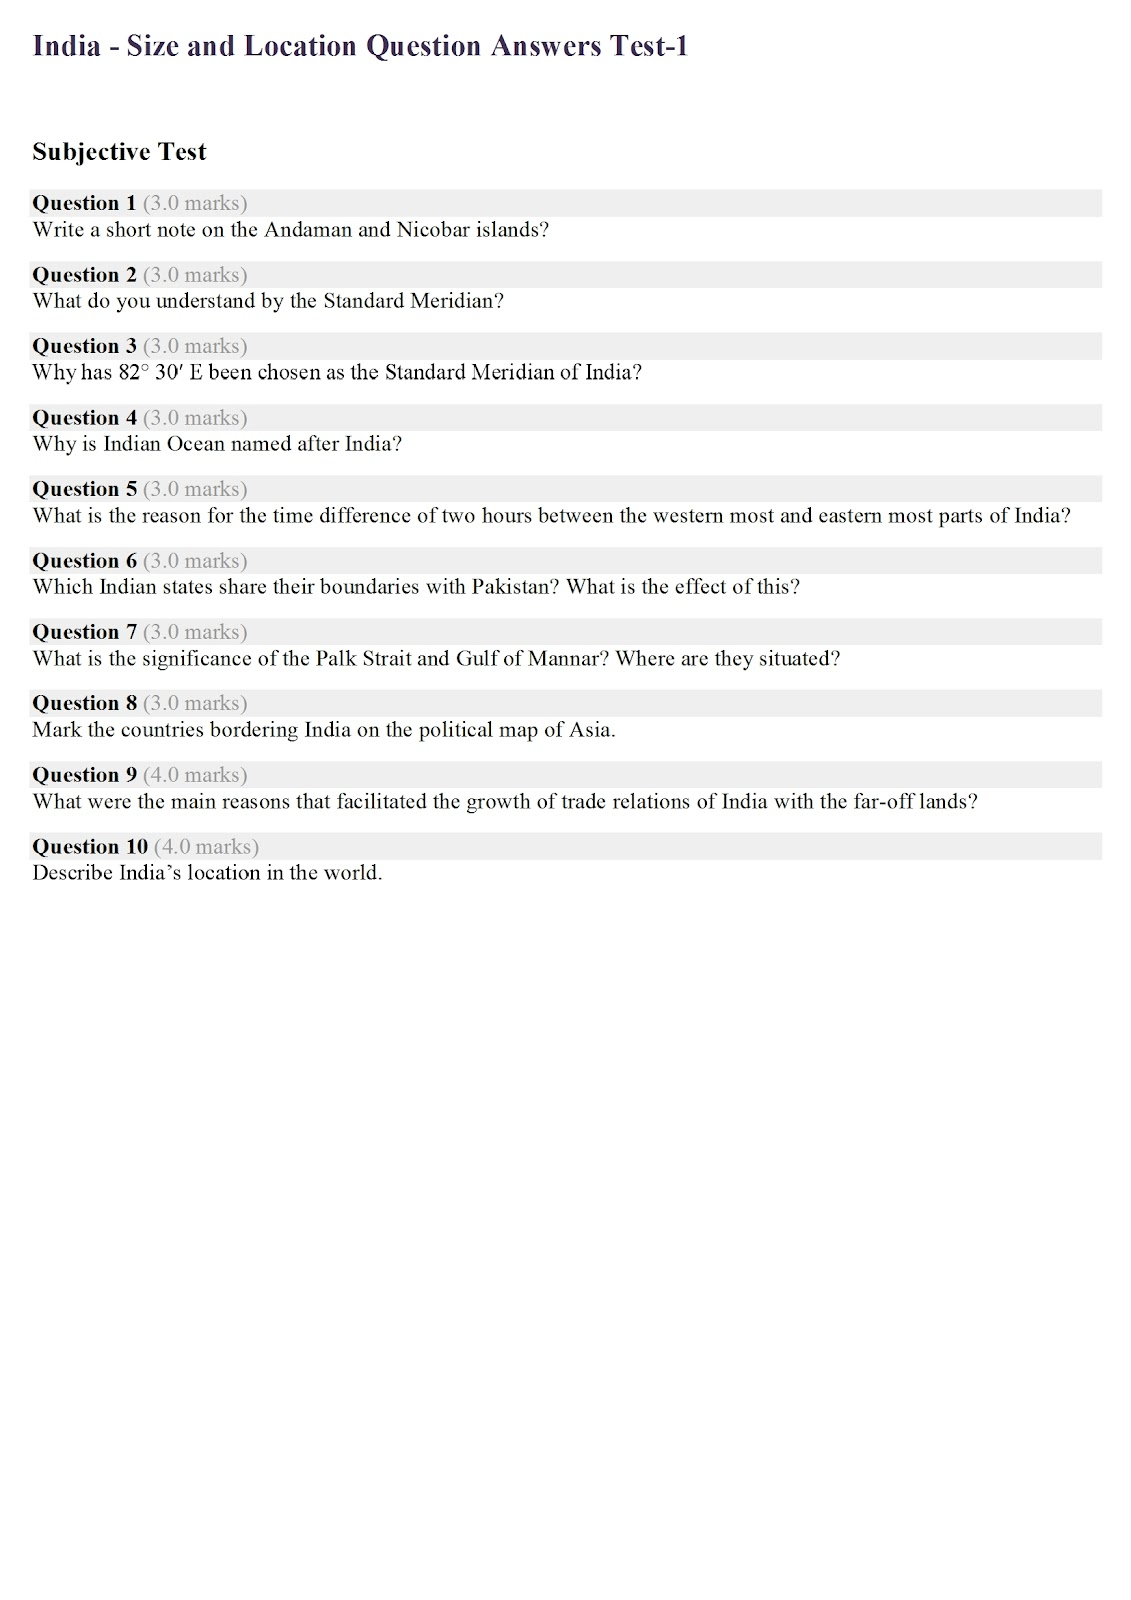 politics and society chapter one notes The guide to welsh's ap world history class ap world history search this site welsh's ap world history class past chapters notes  chapter 1 notes: chapter 1 mesopotamia unfinished  i mesopotamia  c mesopotamian society 1 mesopotamia had a stratified society in which kings and priests controlled much of the wealth.